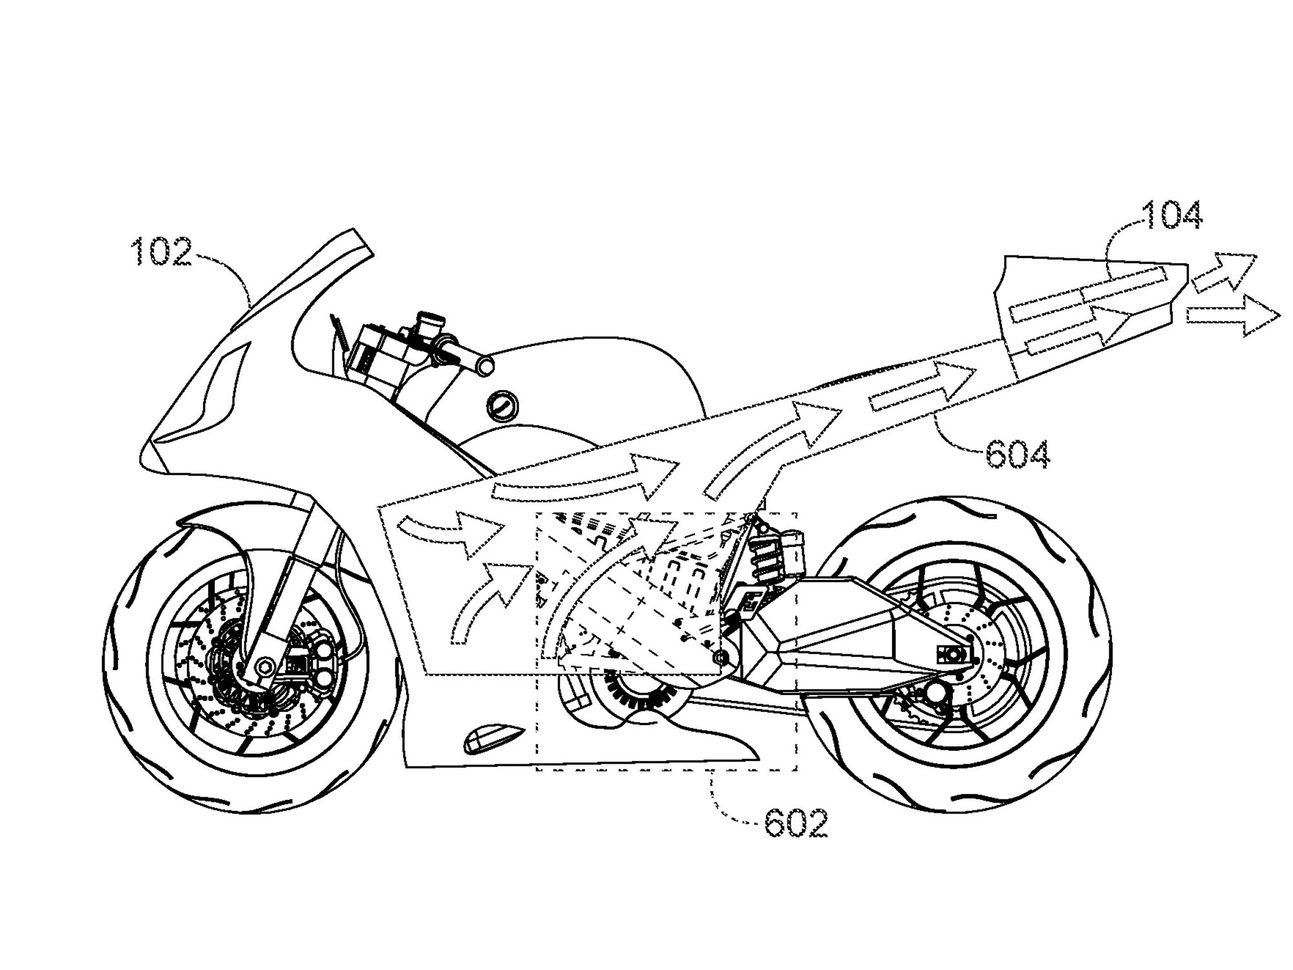 Honda Motorcycle-Mounted Drone Patent Images